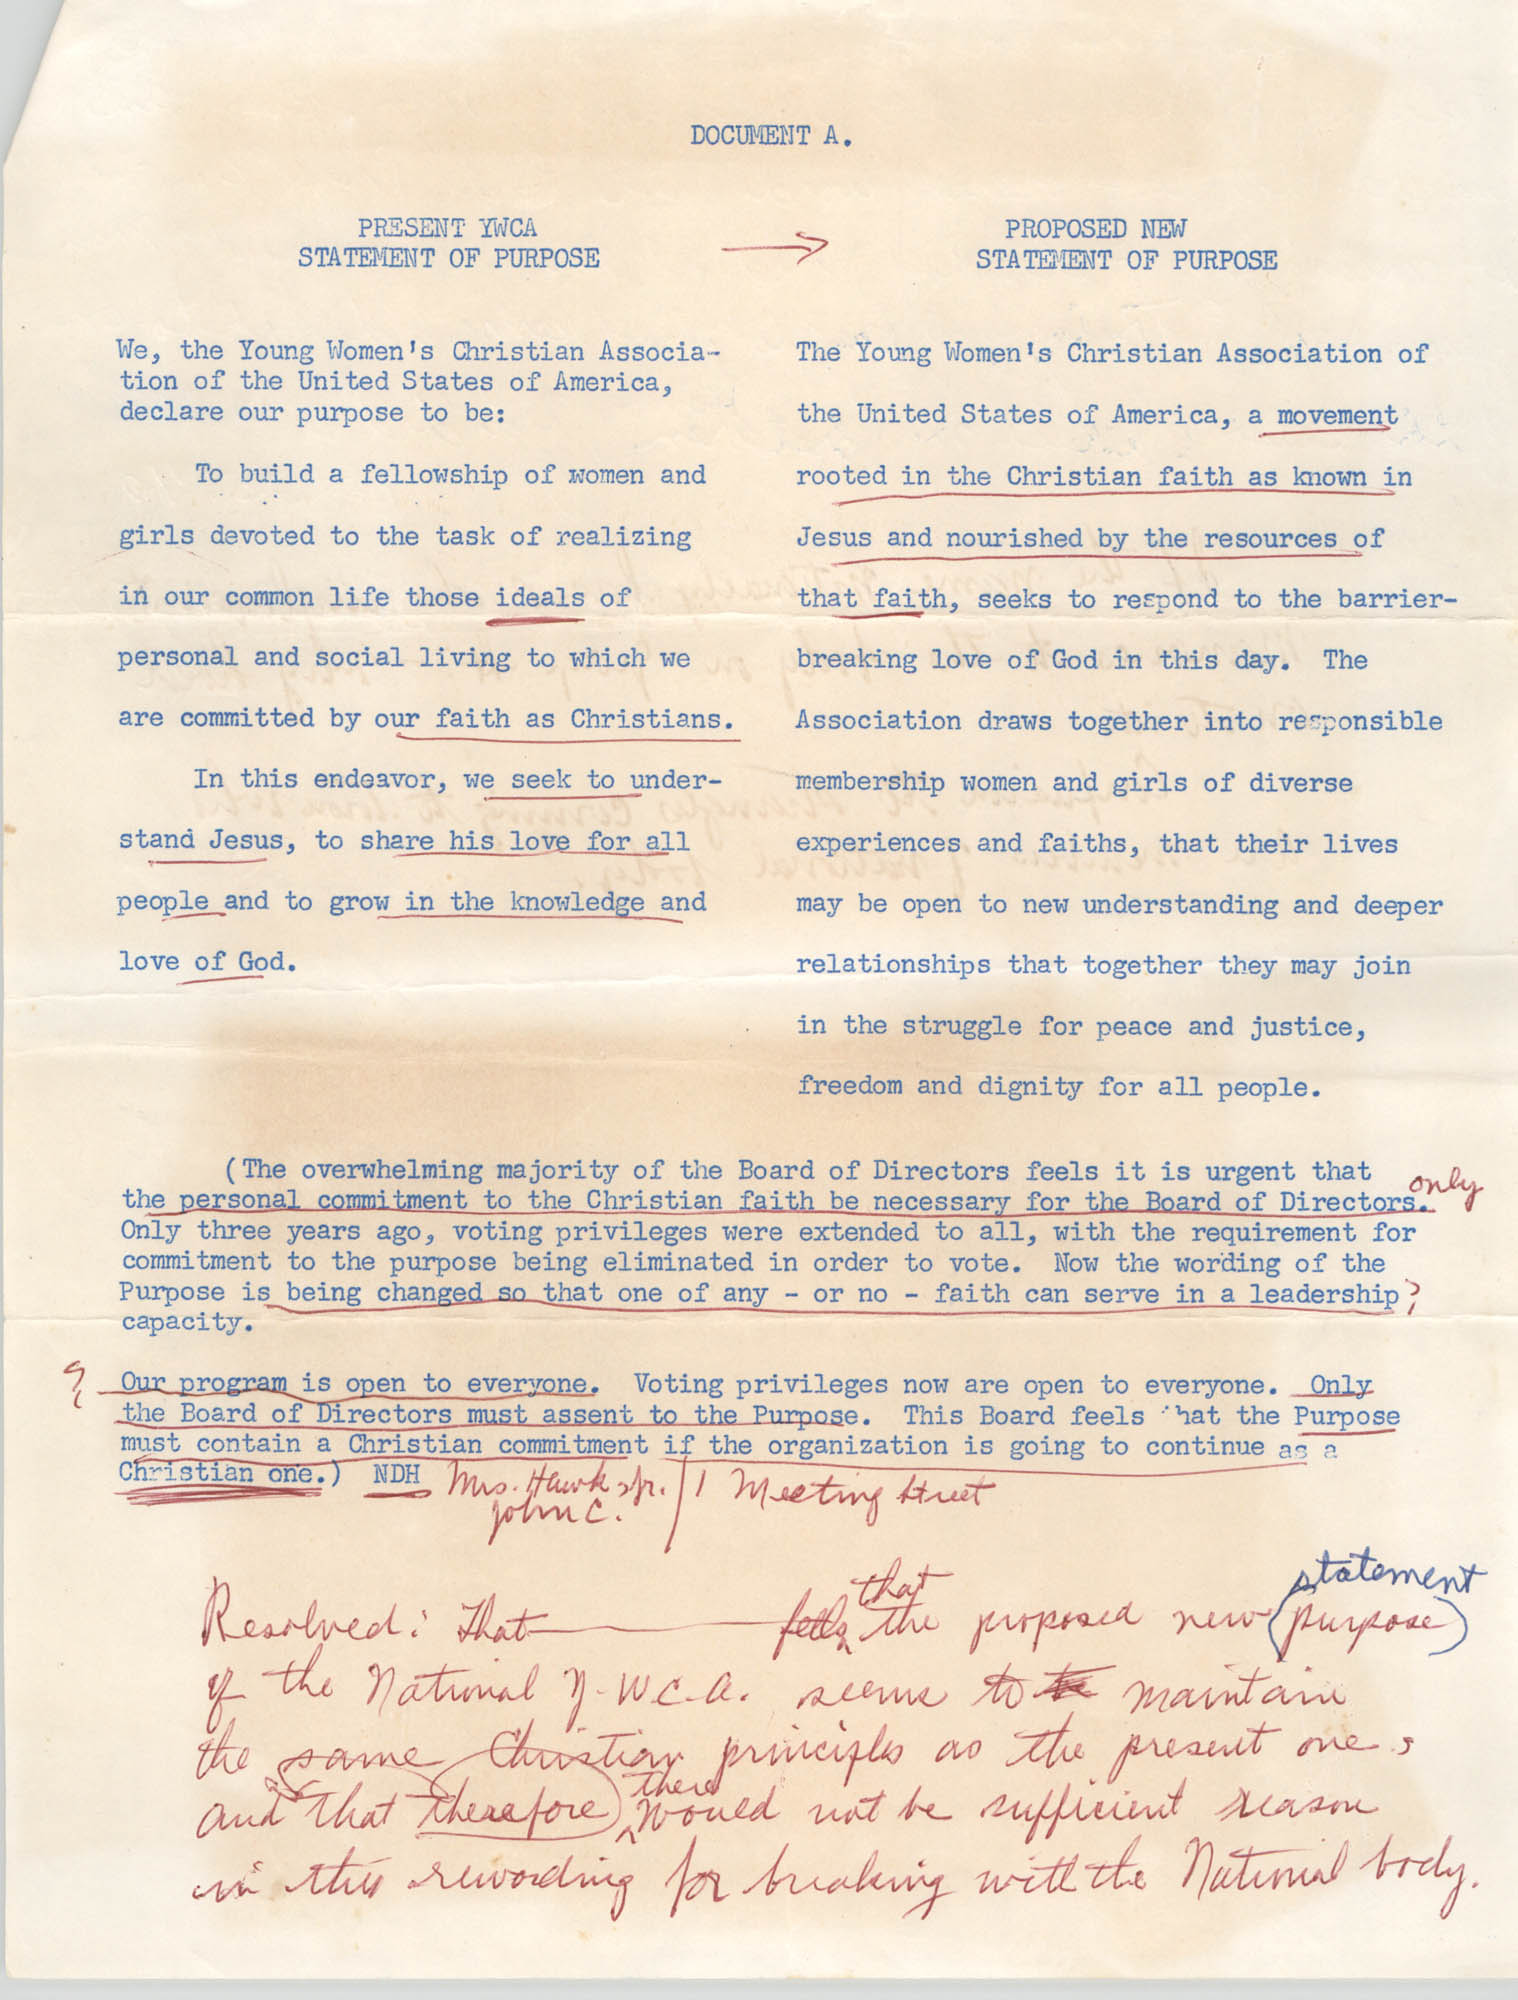 Y.W.C.A. of Greater Charleston Statement of Purpose, 1971